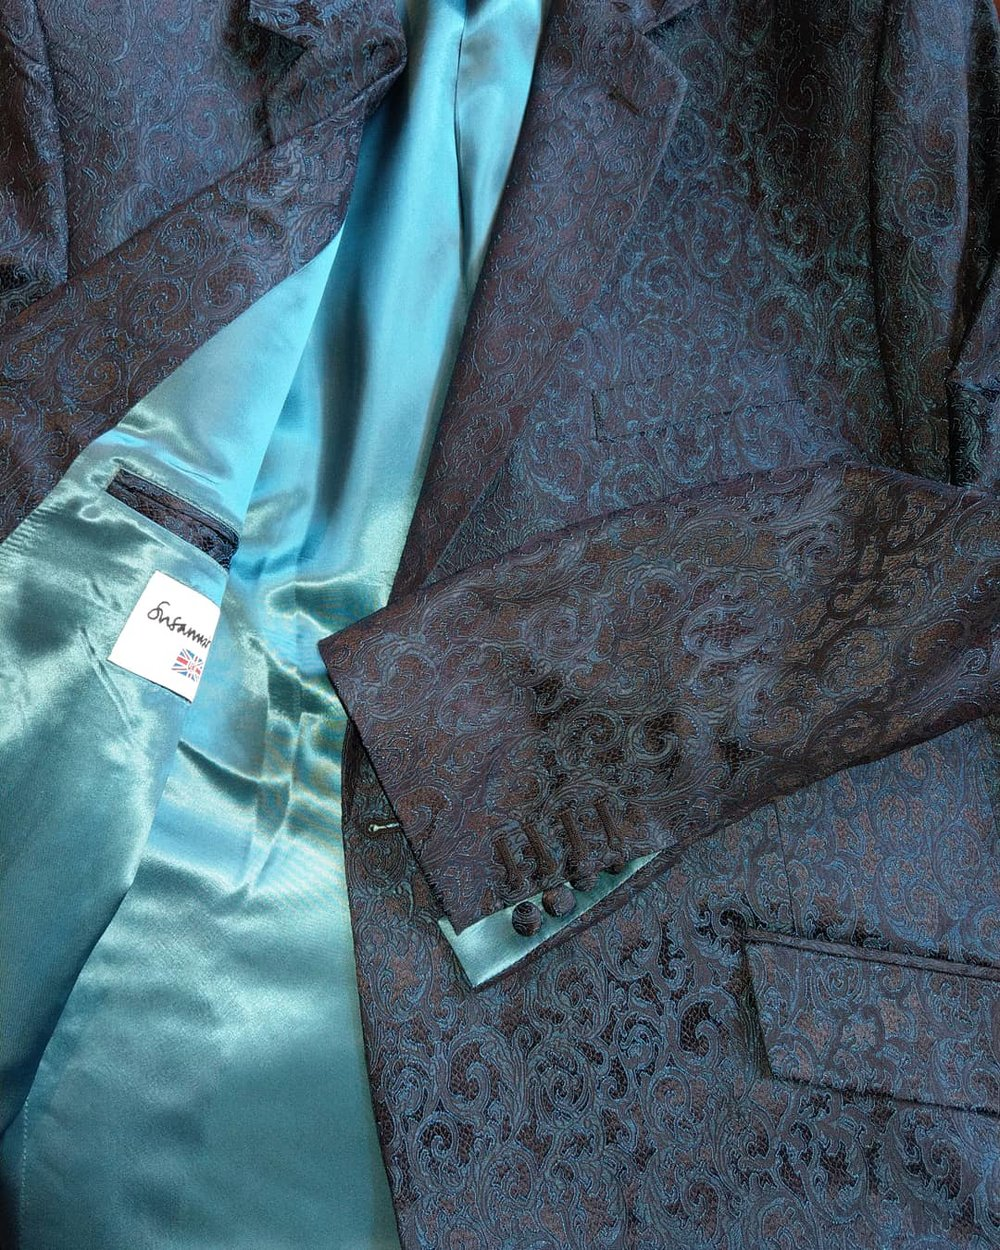 holland-sherry-jaquard-evening-wear-bespoke-susannah-hall-jacket-suit-made-uk-britain.jpg